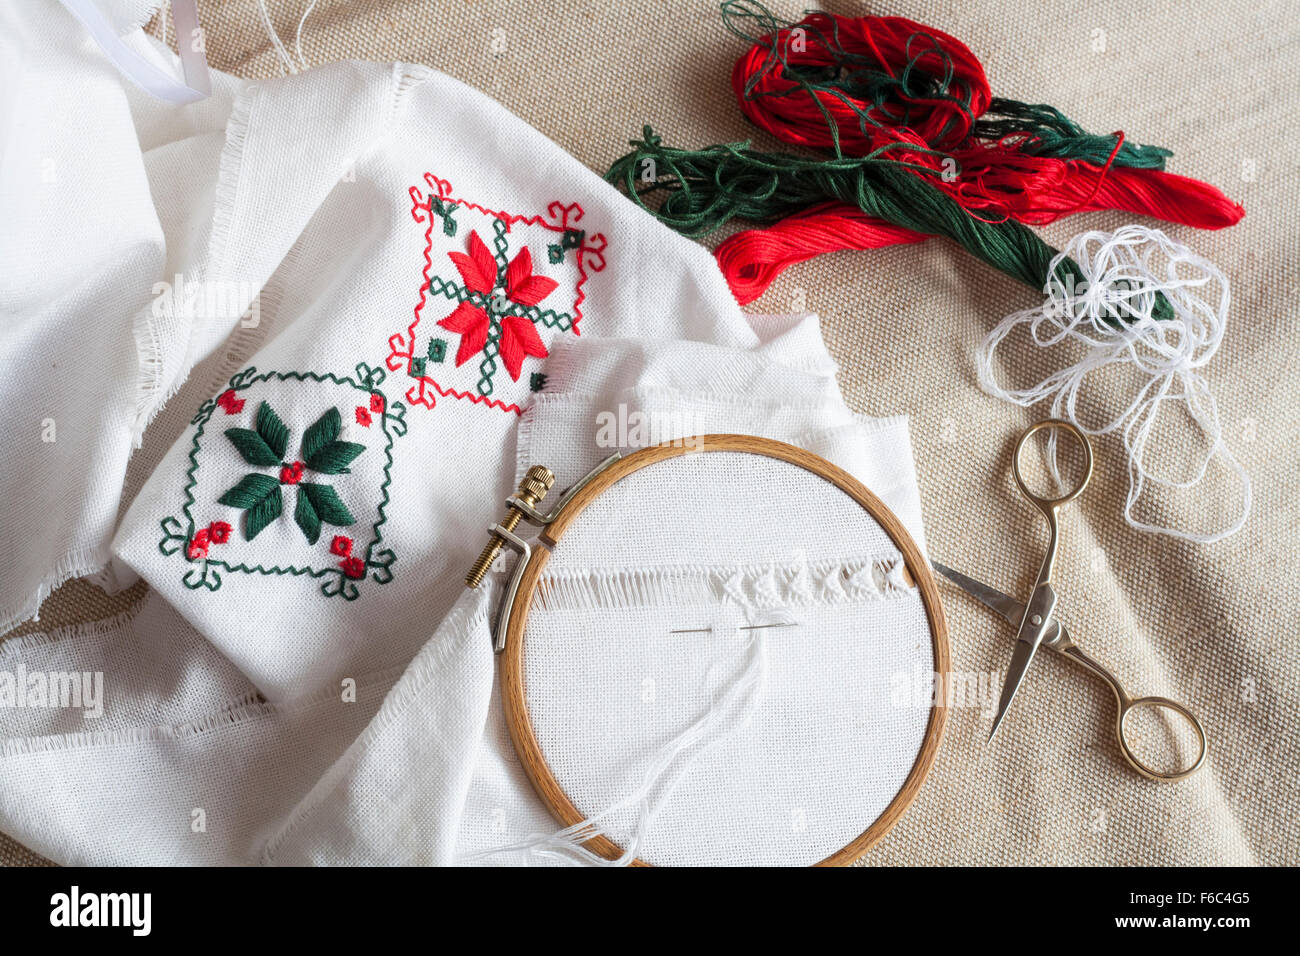 Openwork embroidery, incomplete work in progress and tools for embroidery - Stock Image